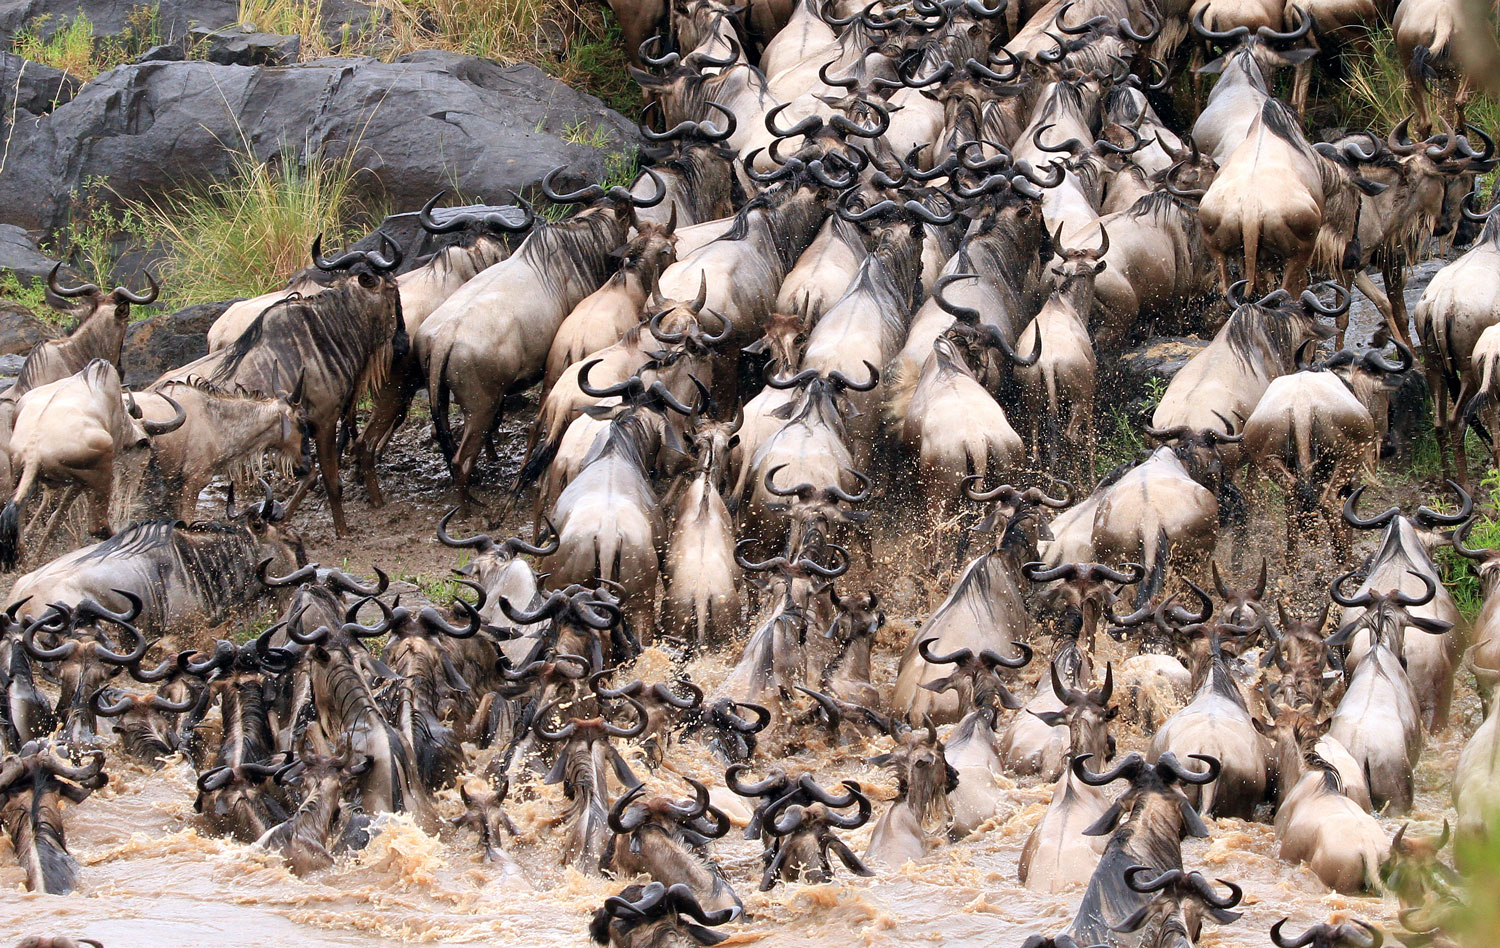 Witness the Real-Life Drama of the Animal Kingdom in the Masai Mara